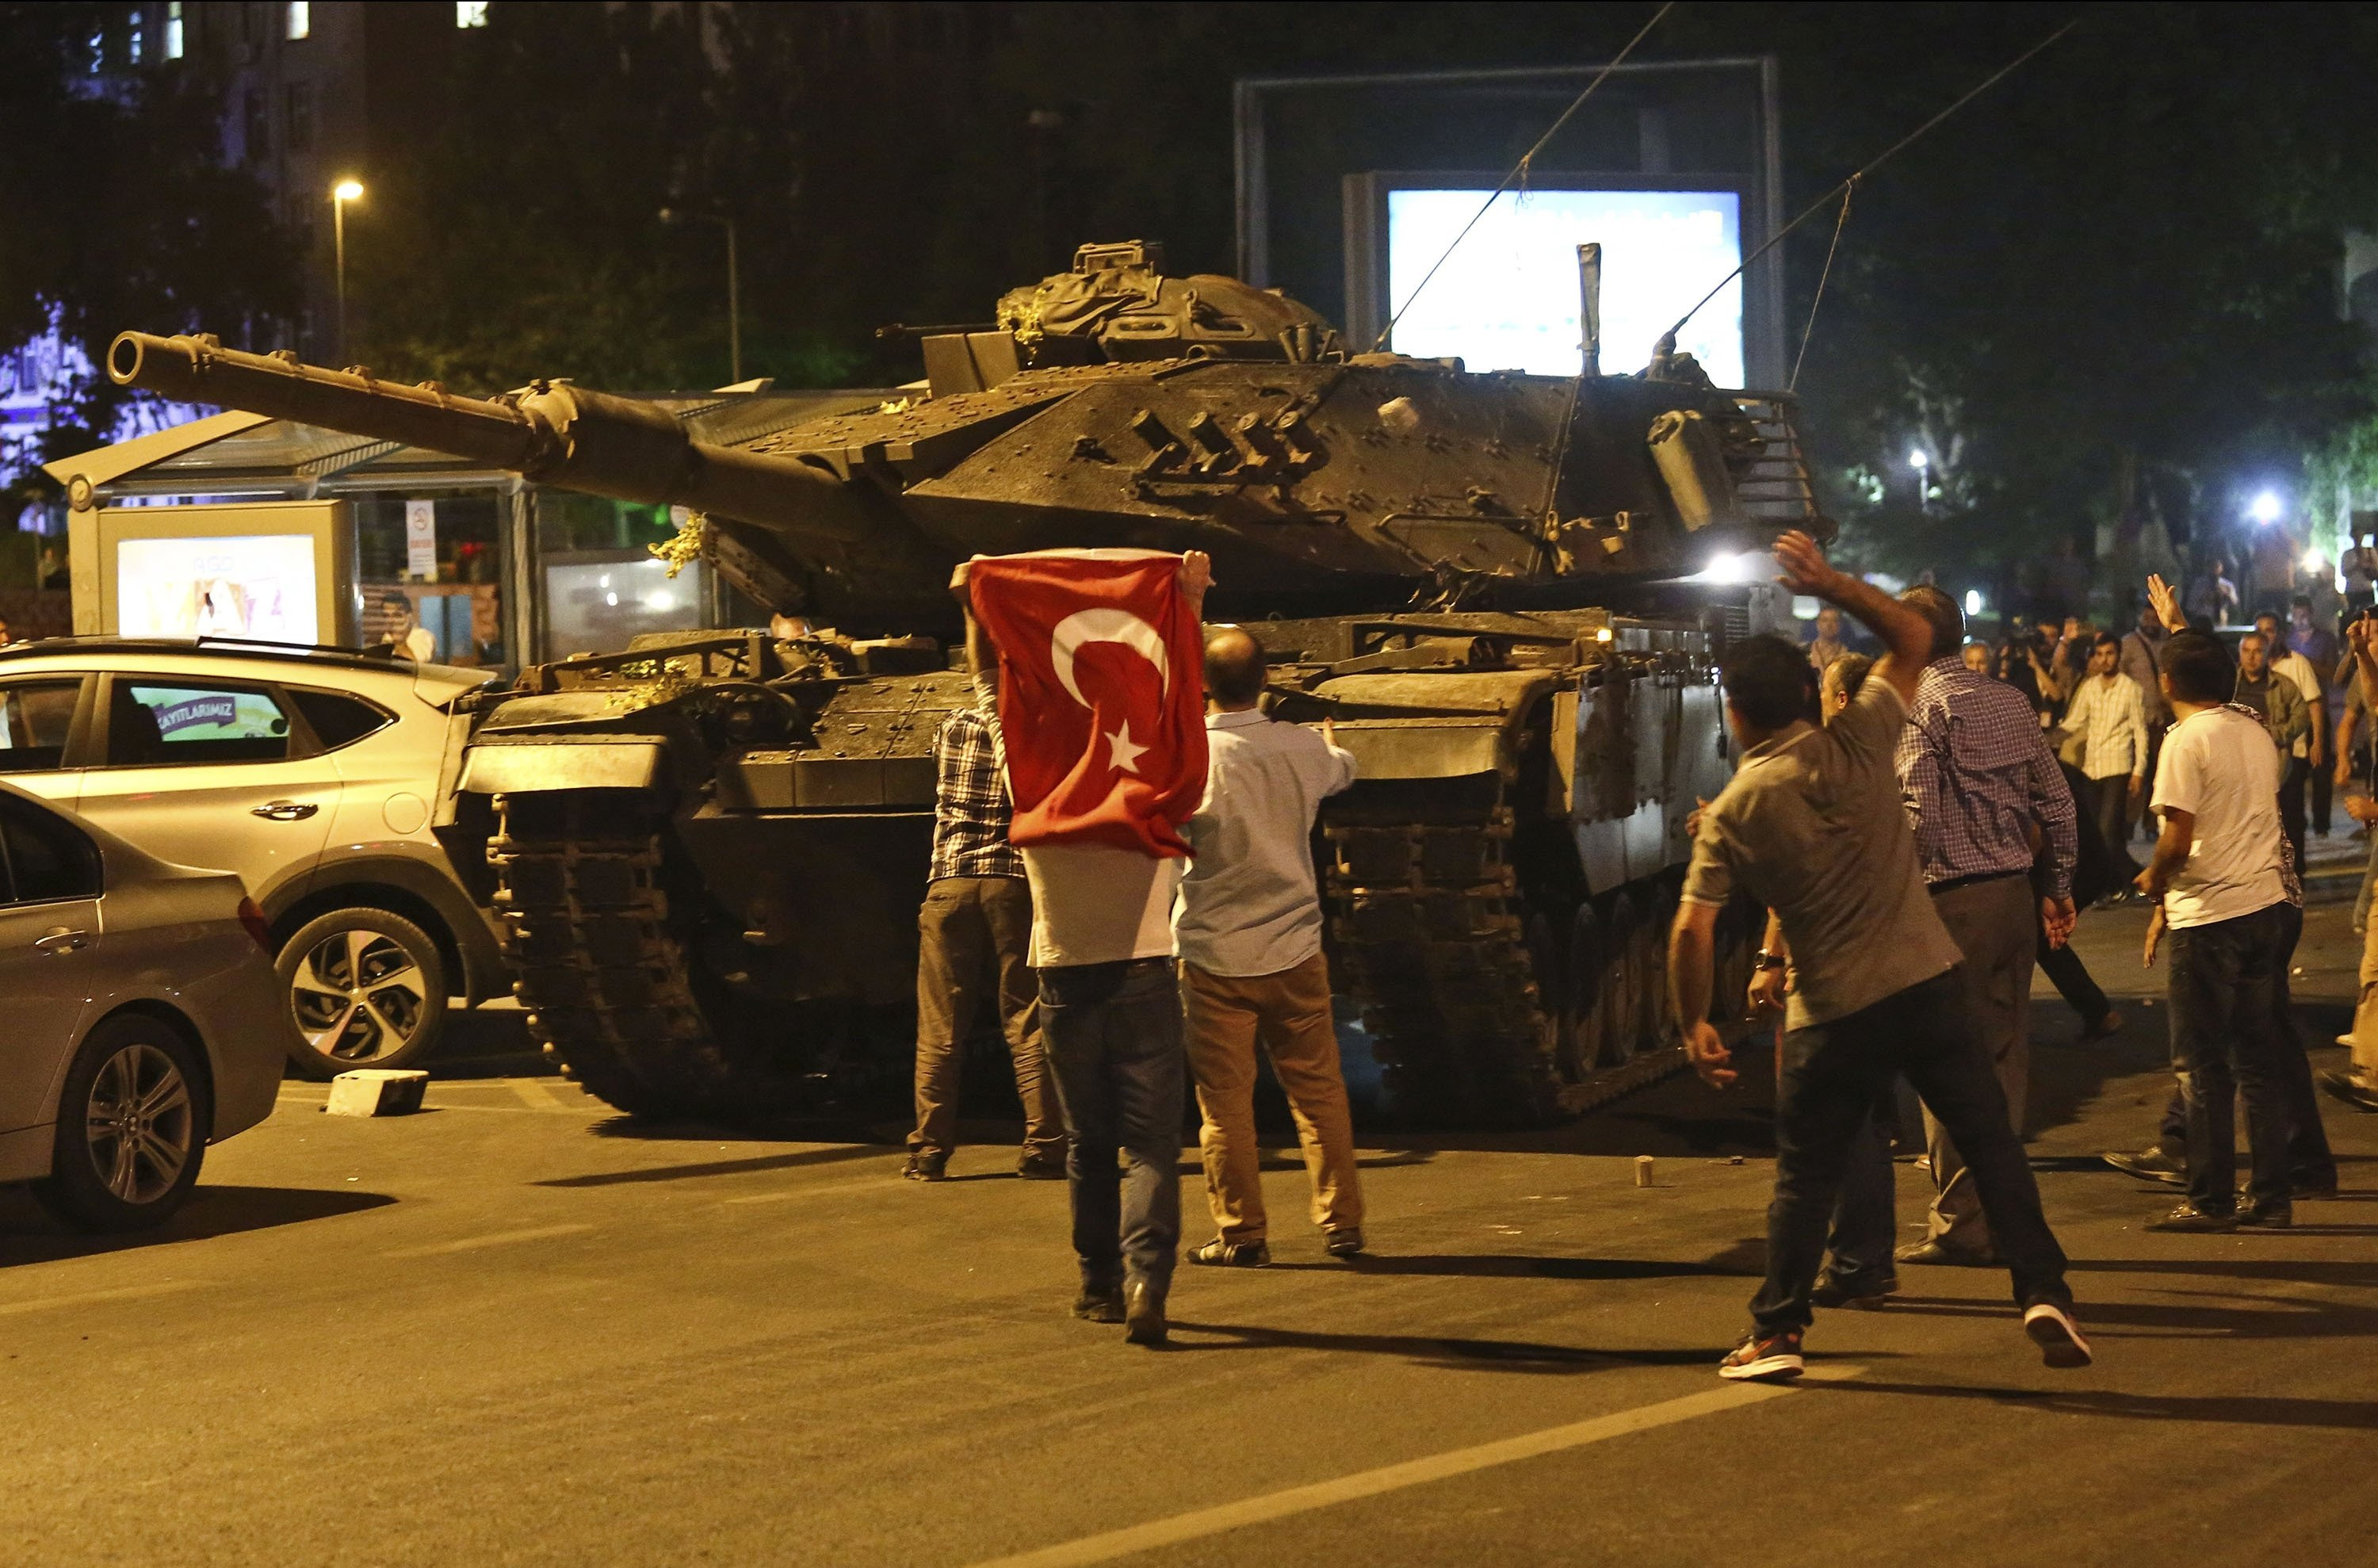 Tanks, part of the forces that attempted the coup, move into position as people attempt to stop them, in Ankara, Turkey, July 16, 2016. (AP Photo)